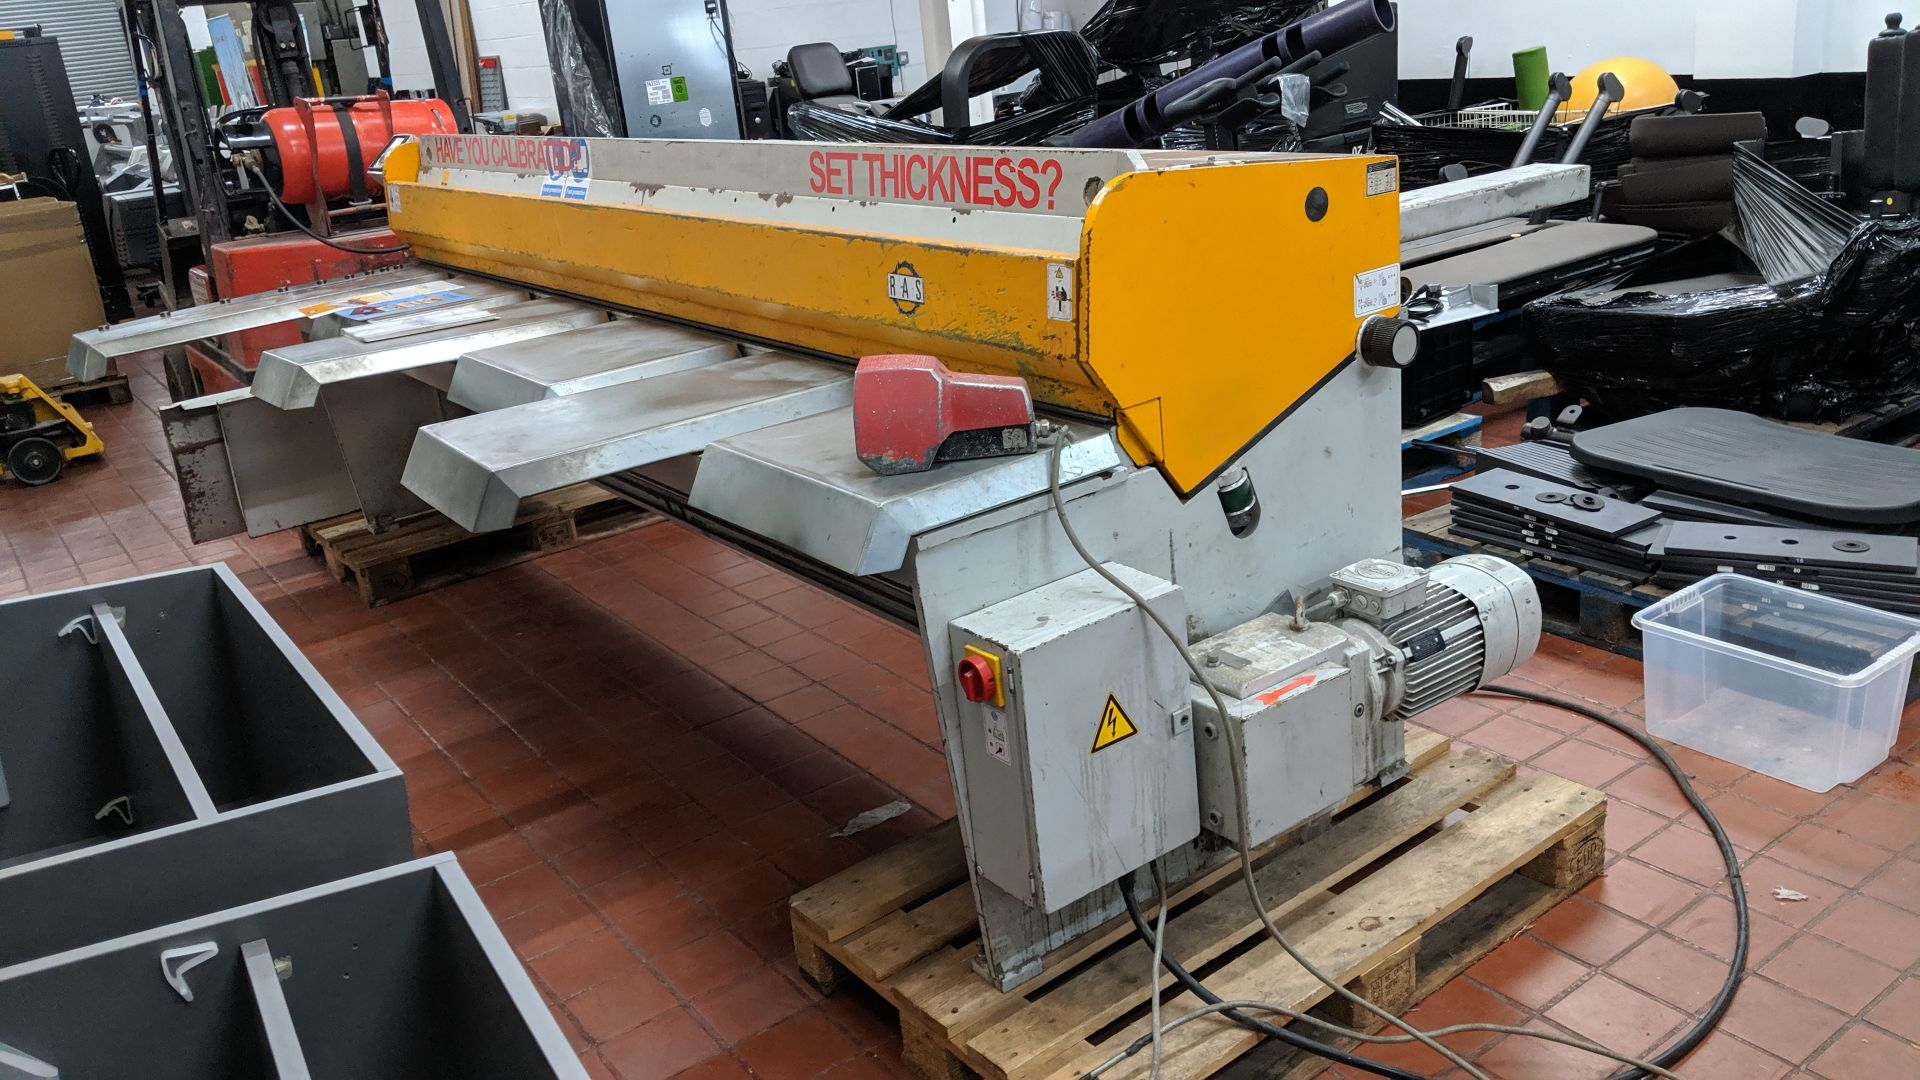 Lot 7 - 2007 RAS model 52.30 SMARTcut swing beam shear with digital controller and manuals. This is one of a